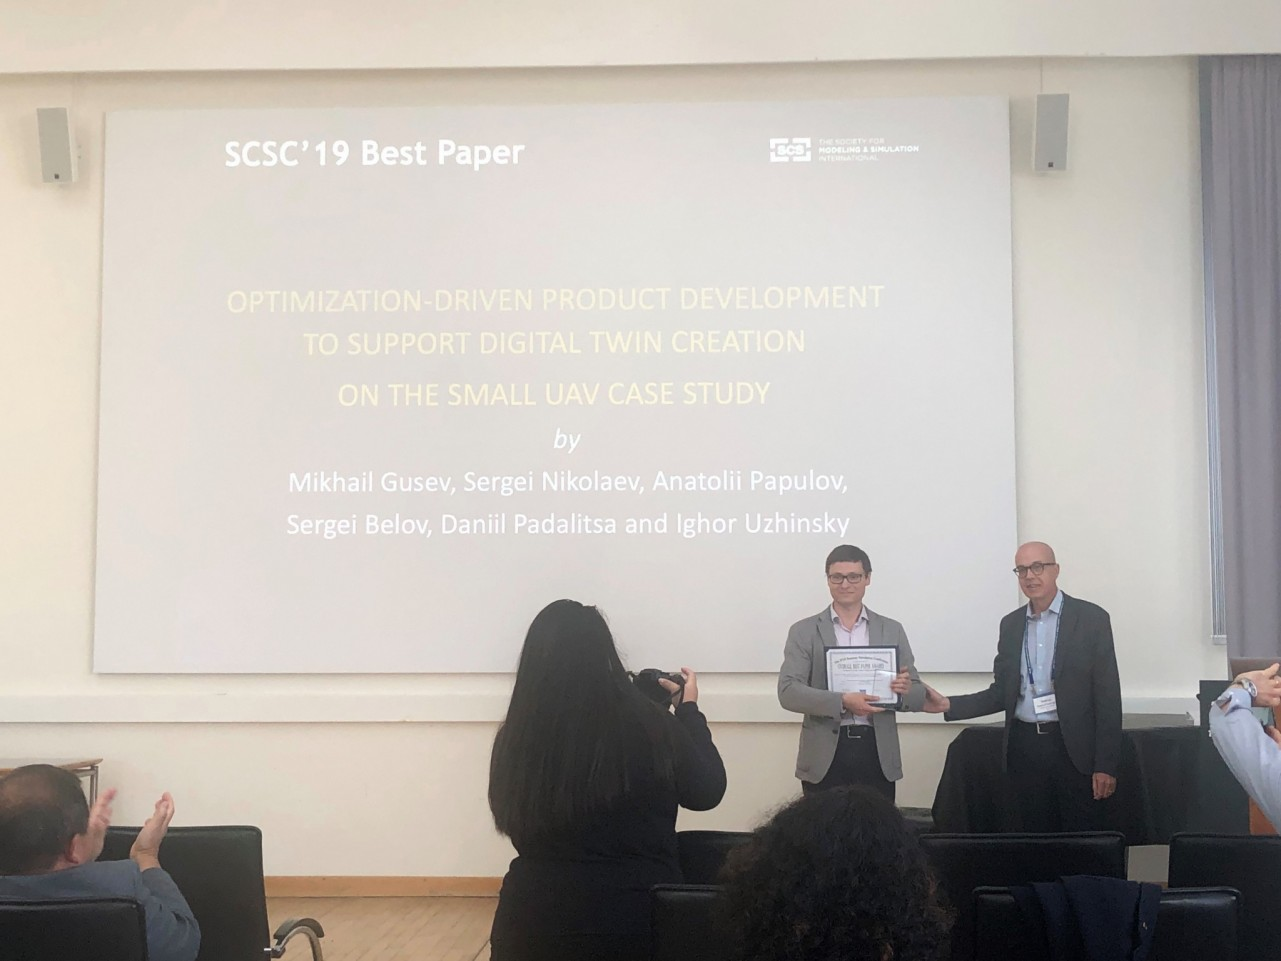 Skoltech | Skoltech scientists win SCSC 2019 Best Paper